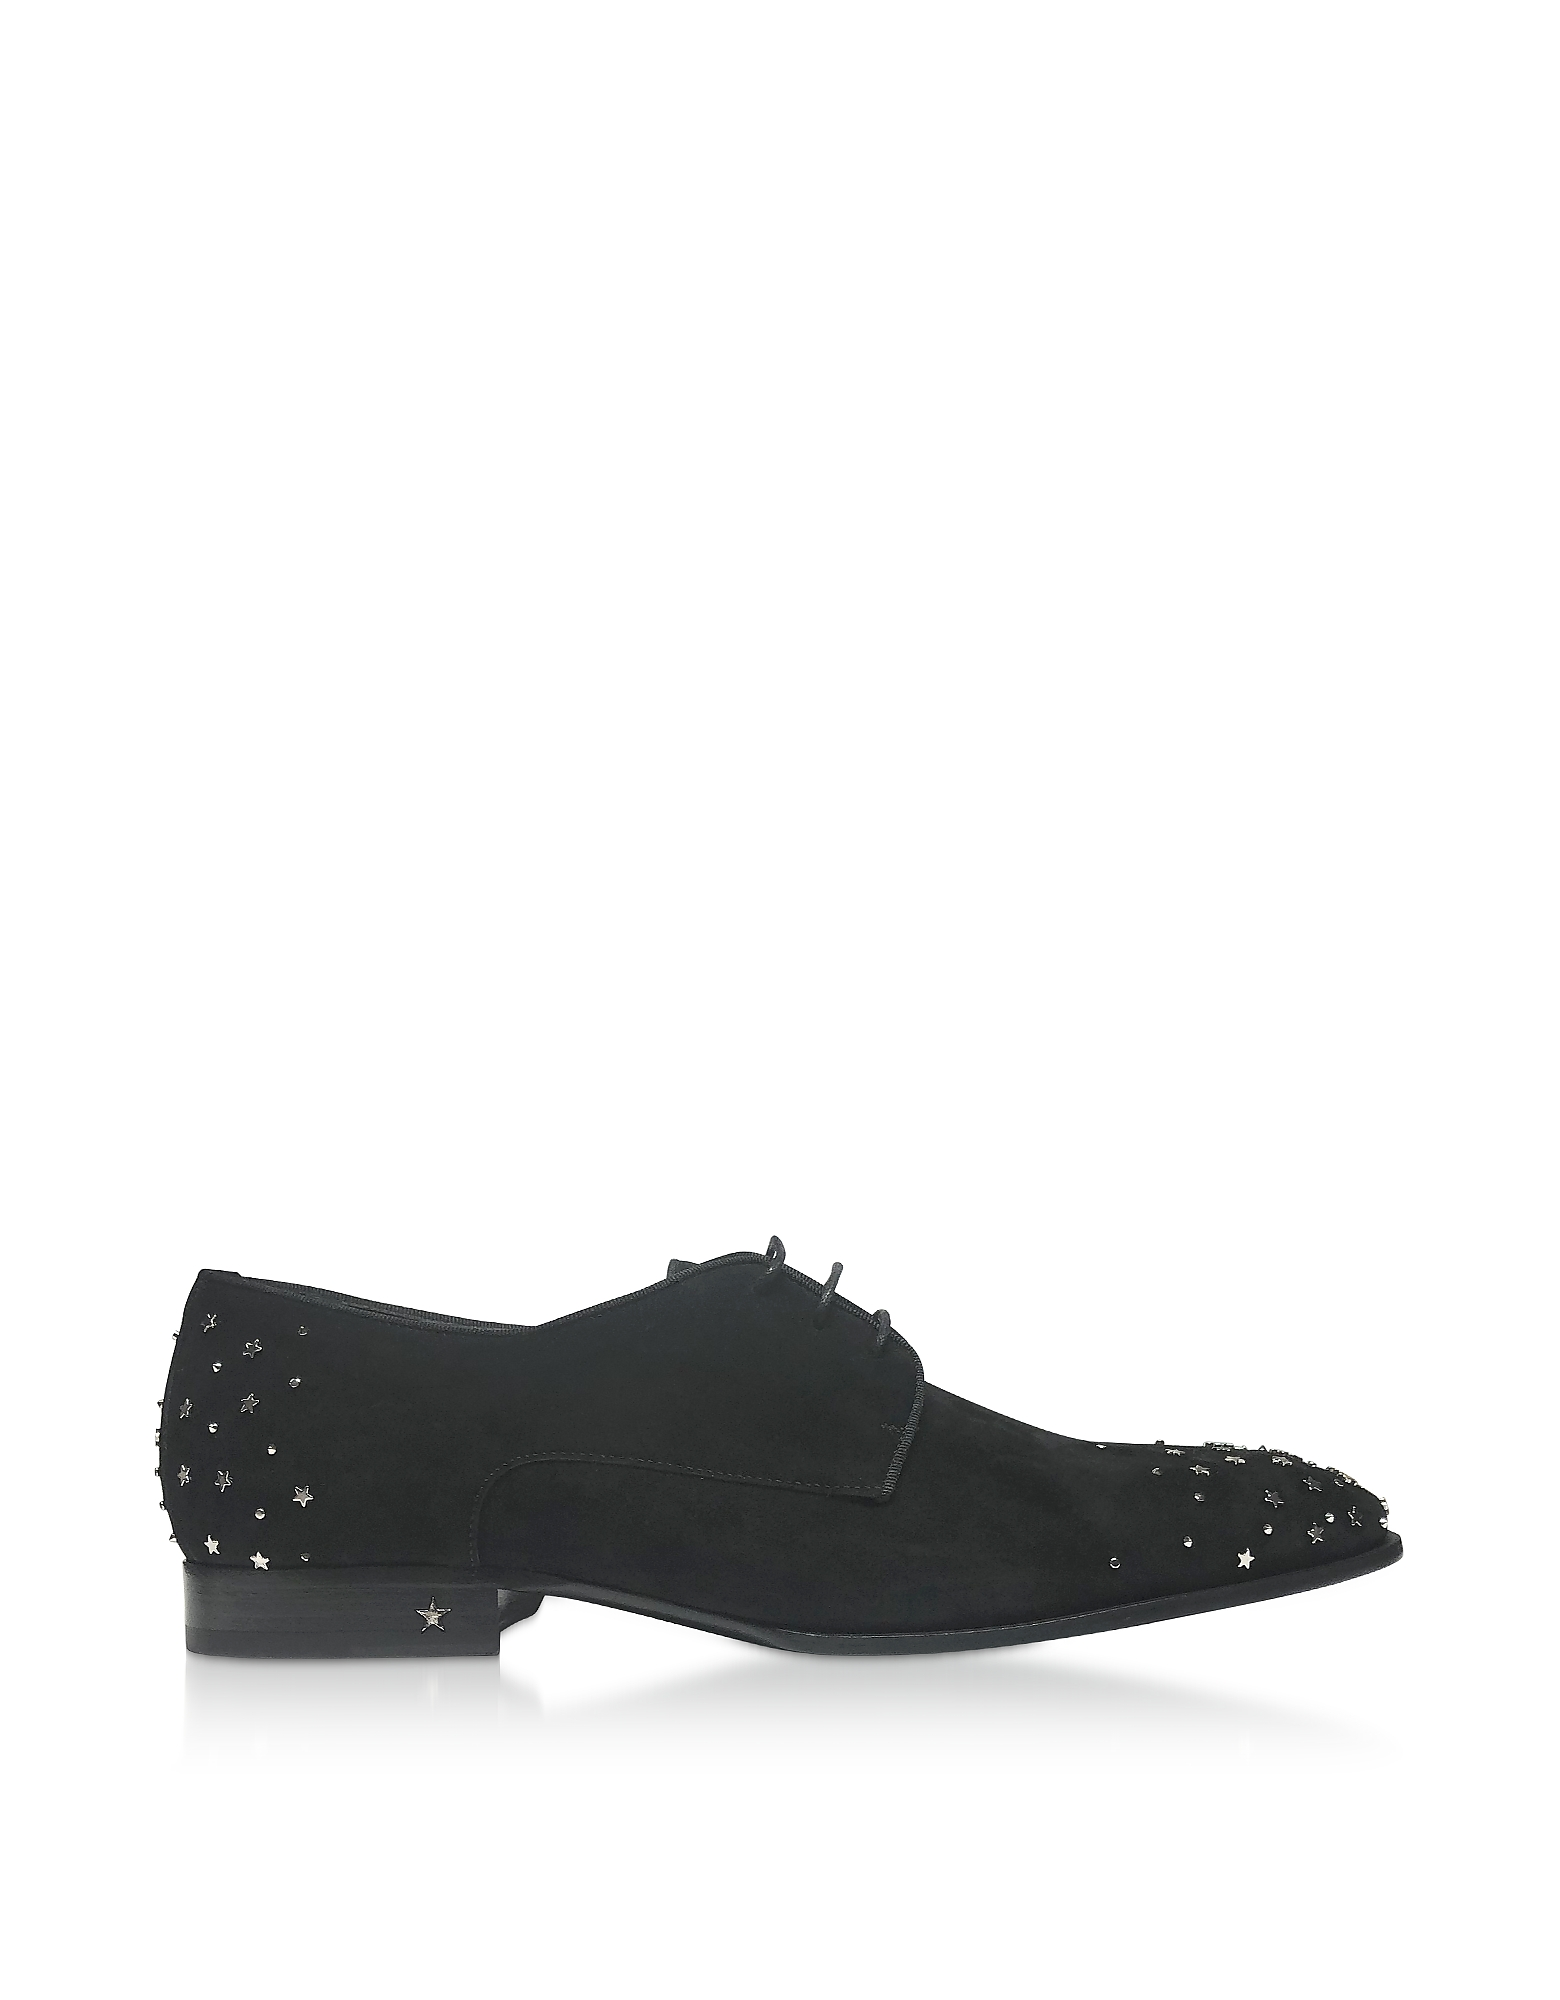 Black Beni EEU Men's Shoes w/ Flat Star Welt